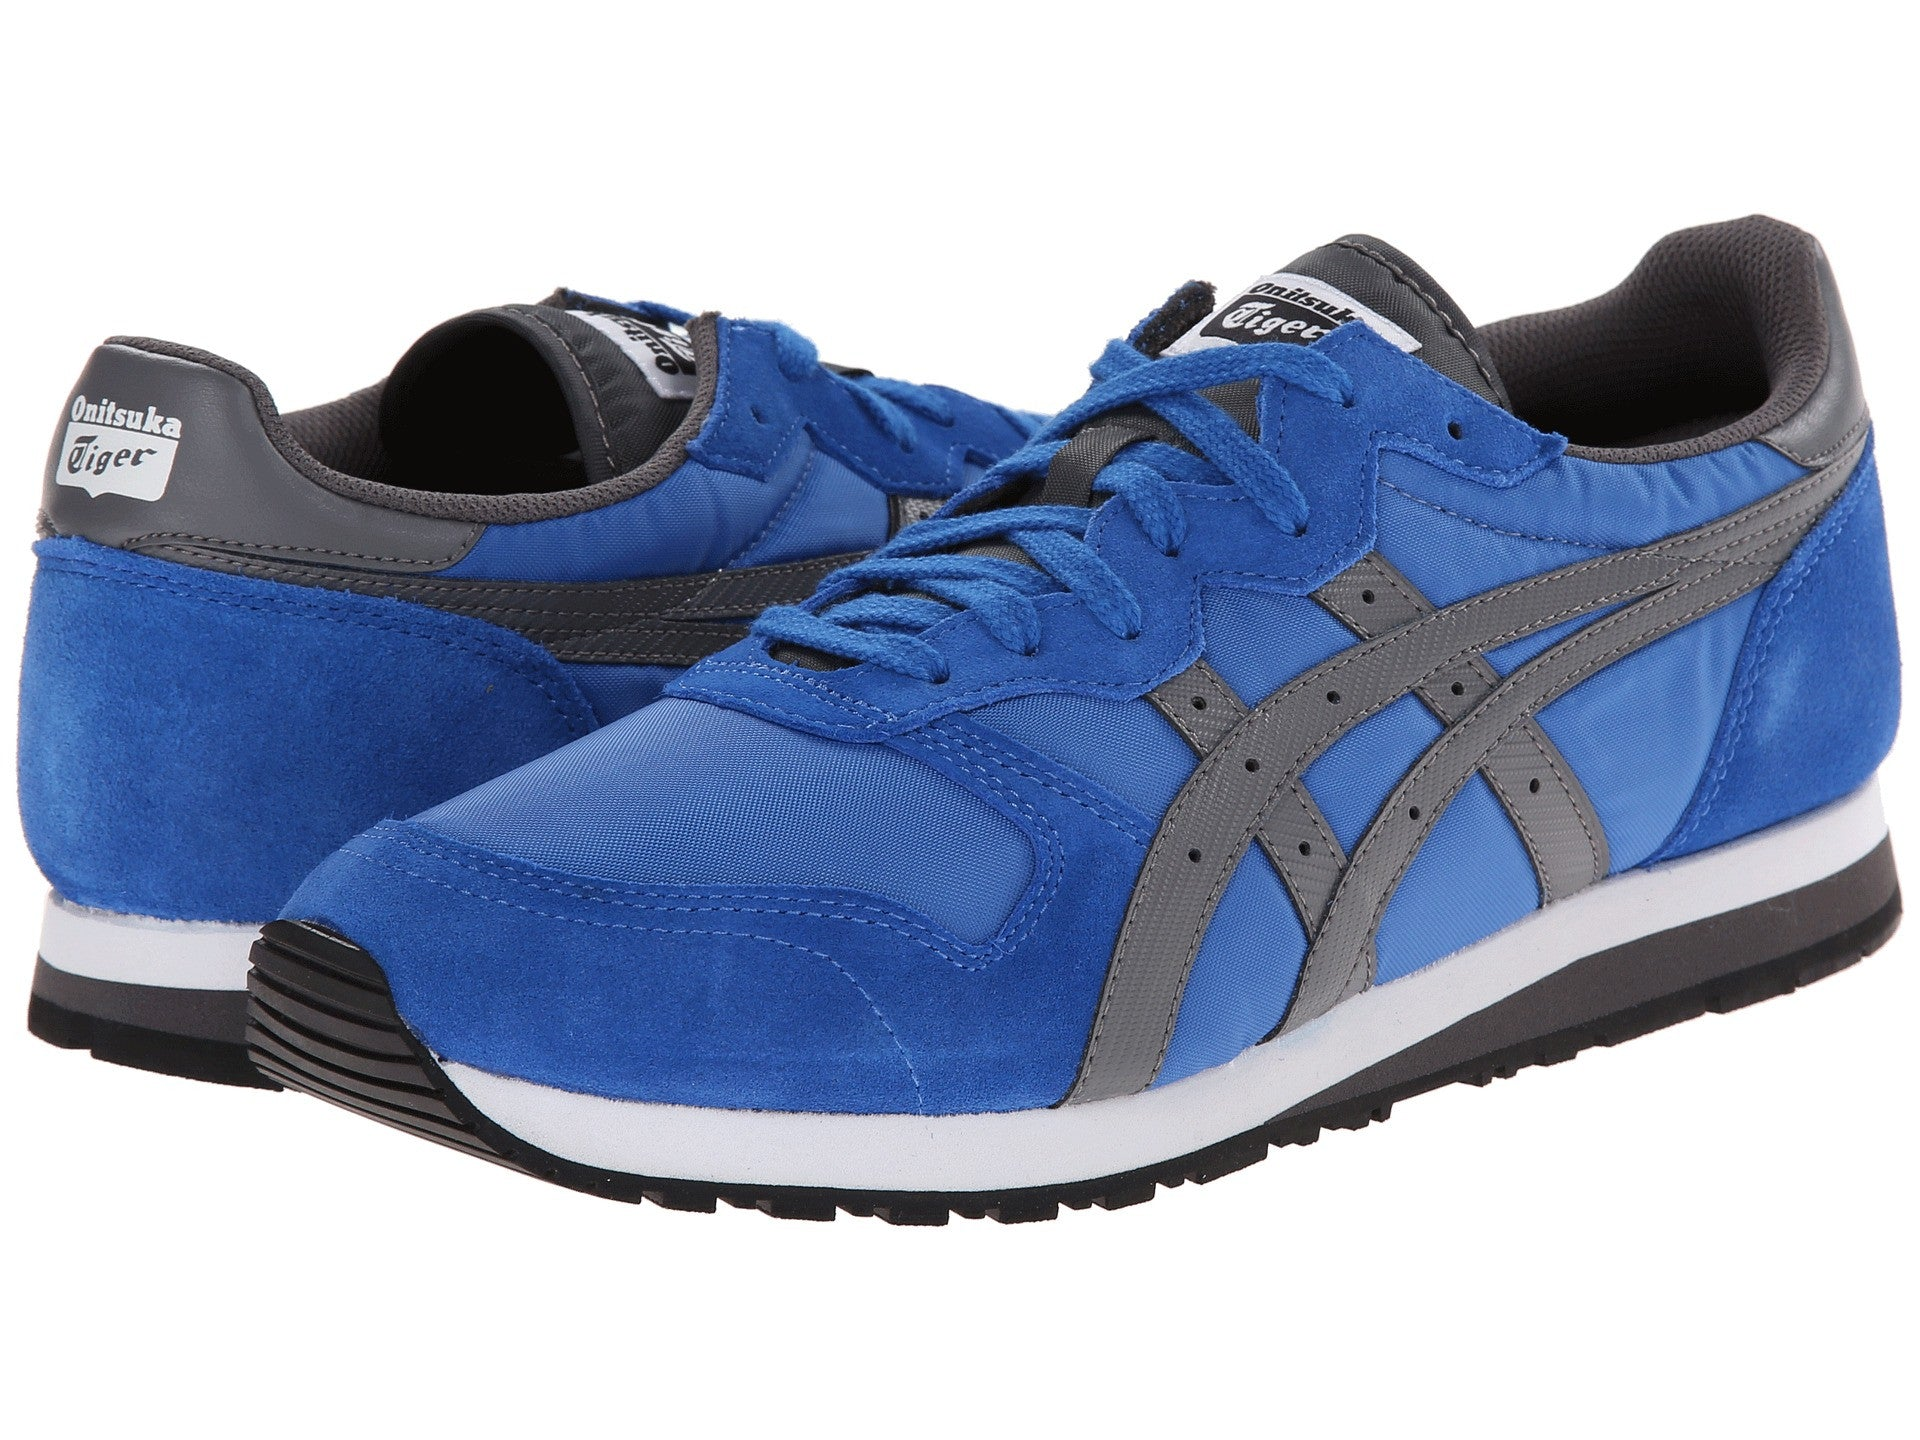 buy online 6d46a 0a029 Onitsuka Tiger by Asics OC Runner in Stong Blue/Grey D549L.4411